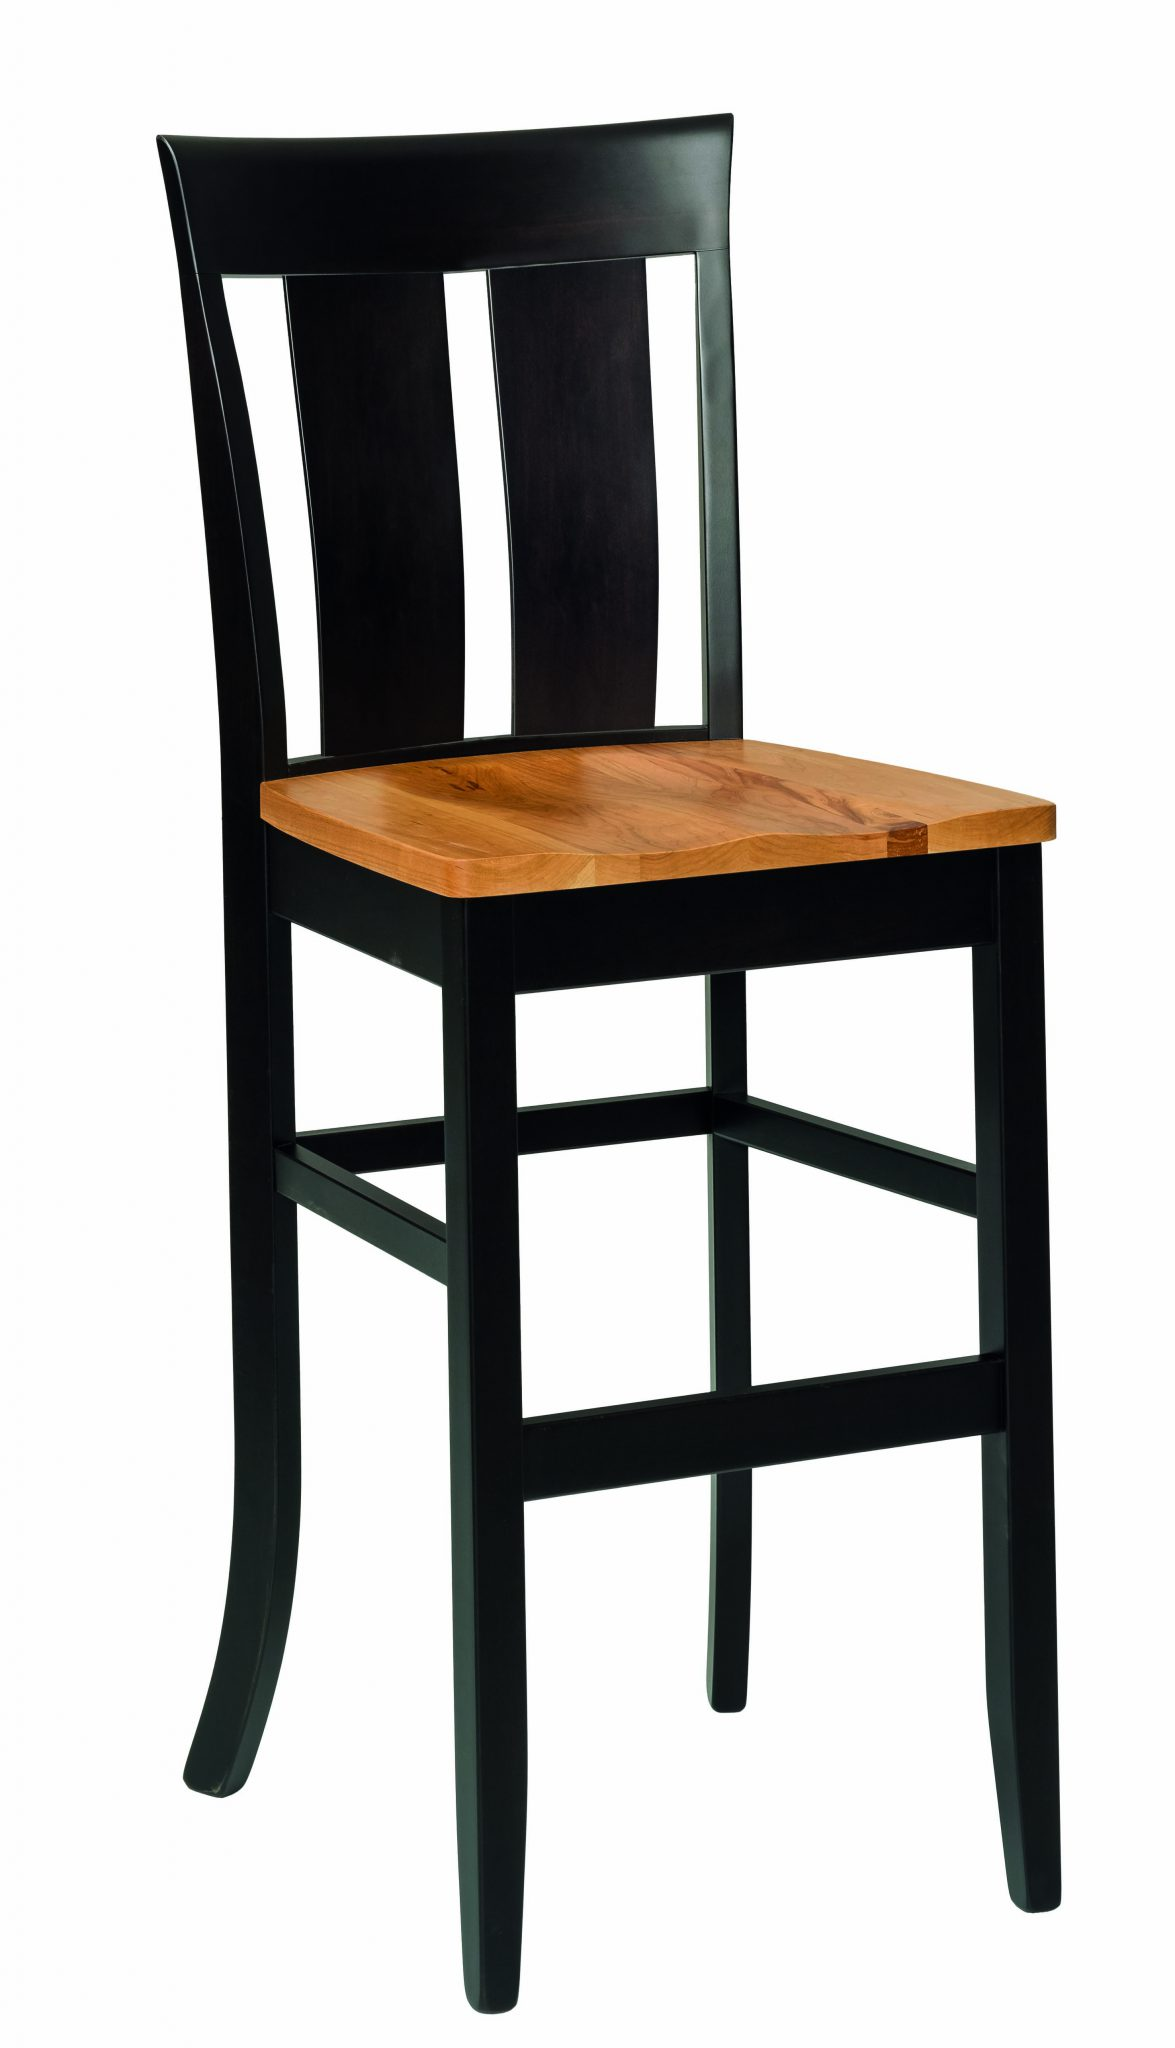 Natalie Live Edge Bar Dining Collection For Sale In Dayton